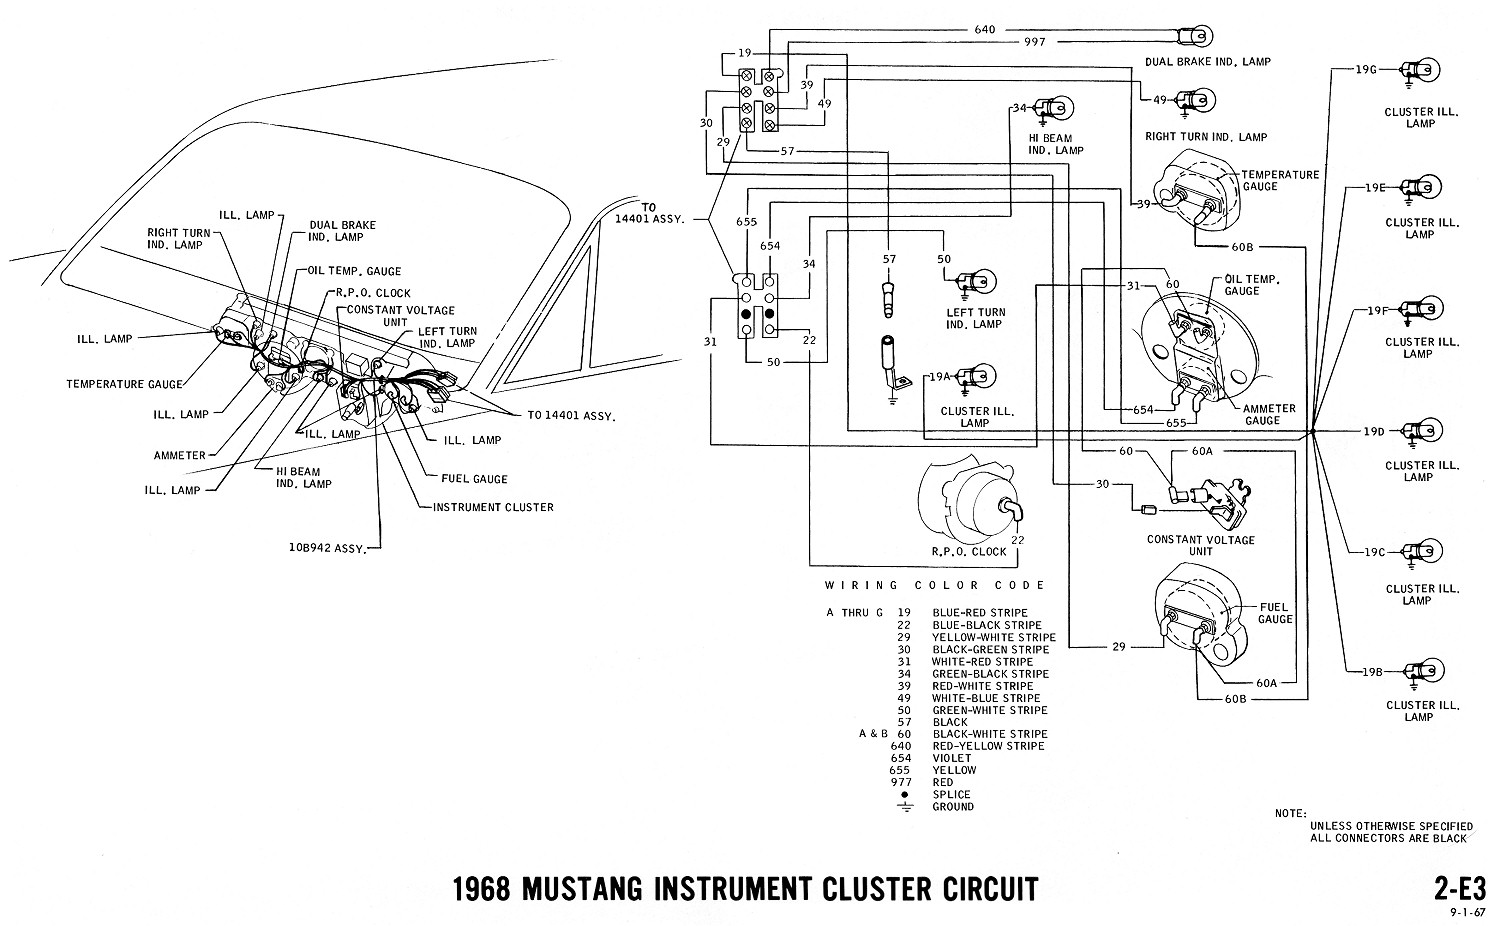 65 mustang wiper motor wiring diagram 2005 mustang wiper motor wiring diagram 1968 mustang wiring diagrams and vacuum schematics